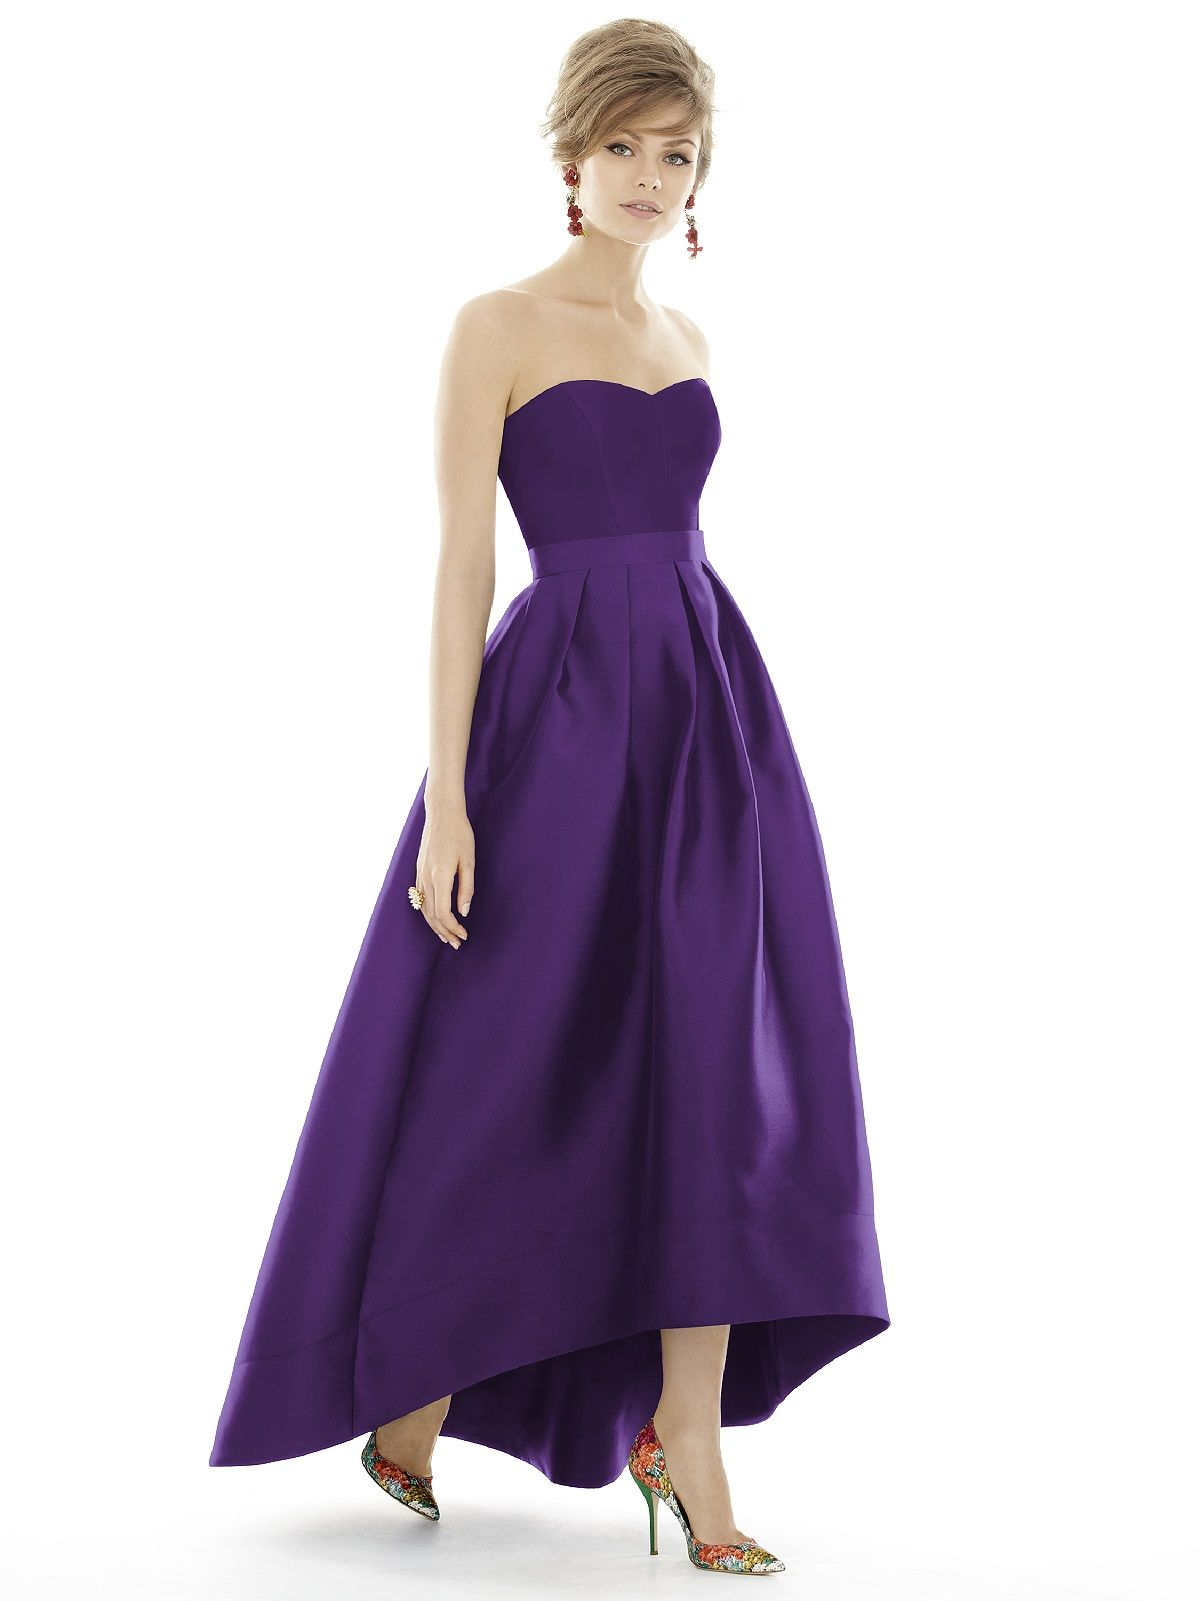 Shop Alfred Sung Bridesmaid Dress - D699 in Sateen Twill at ...